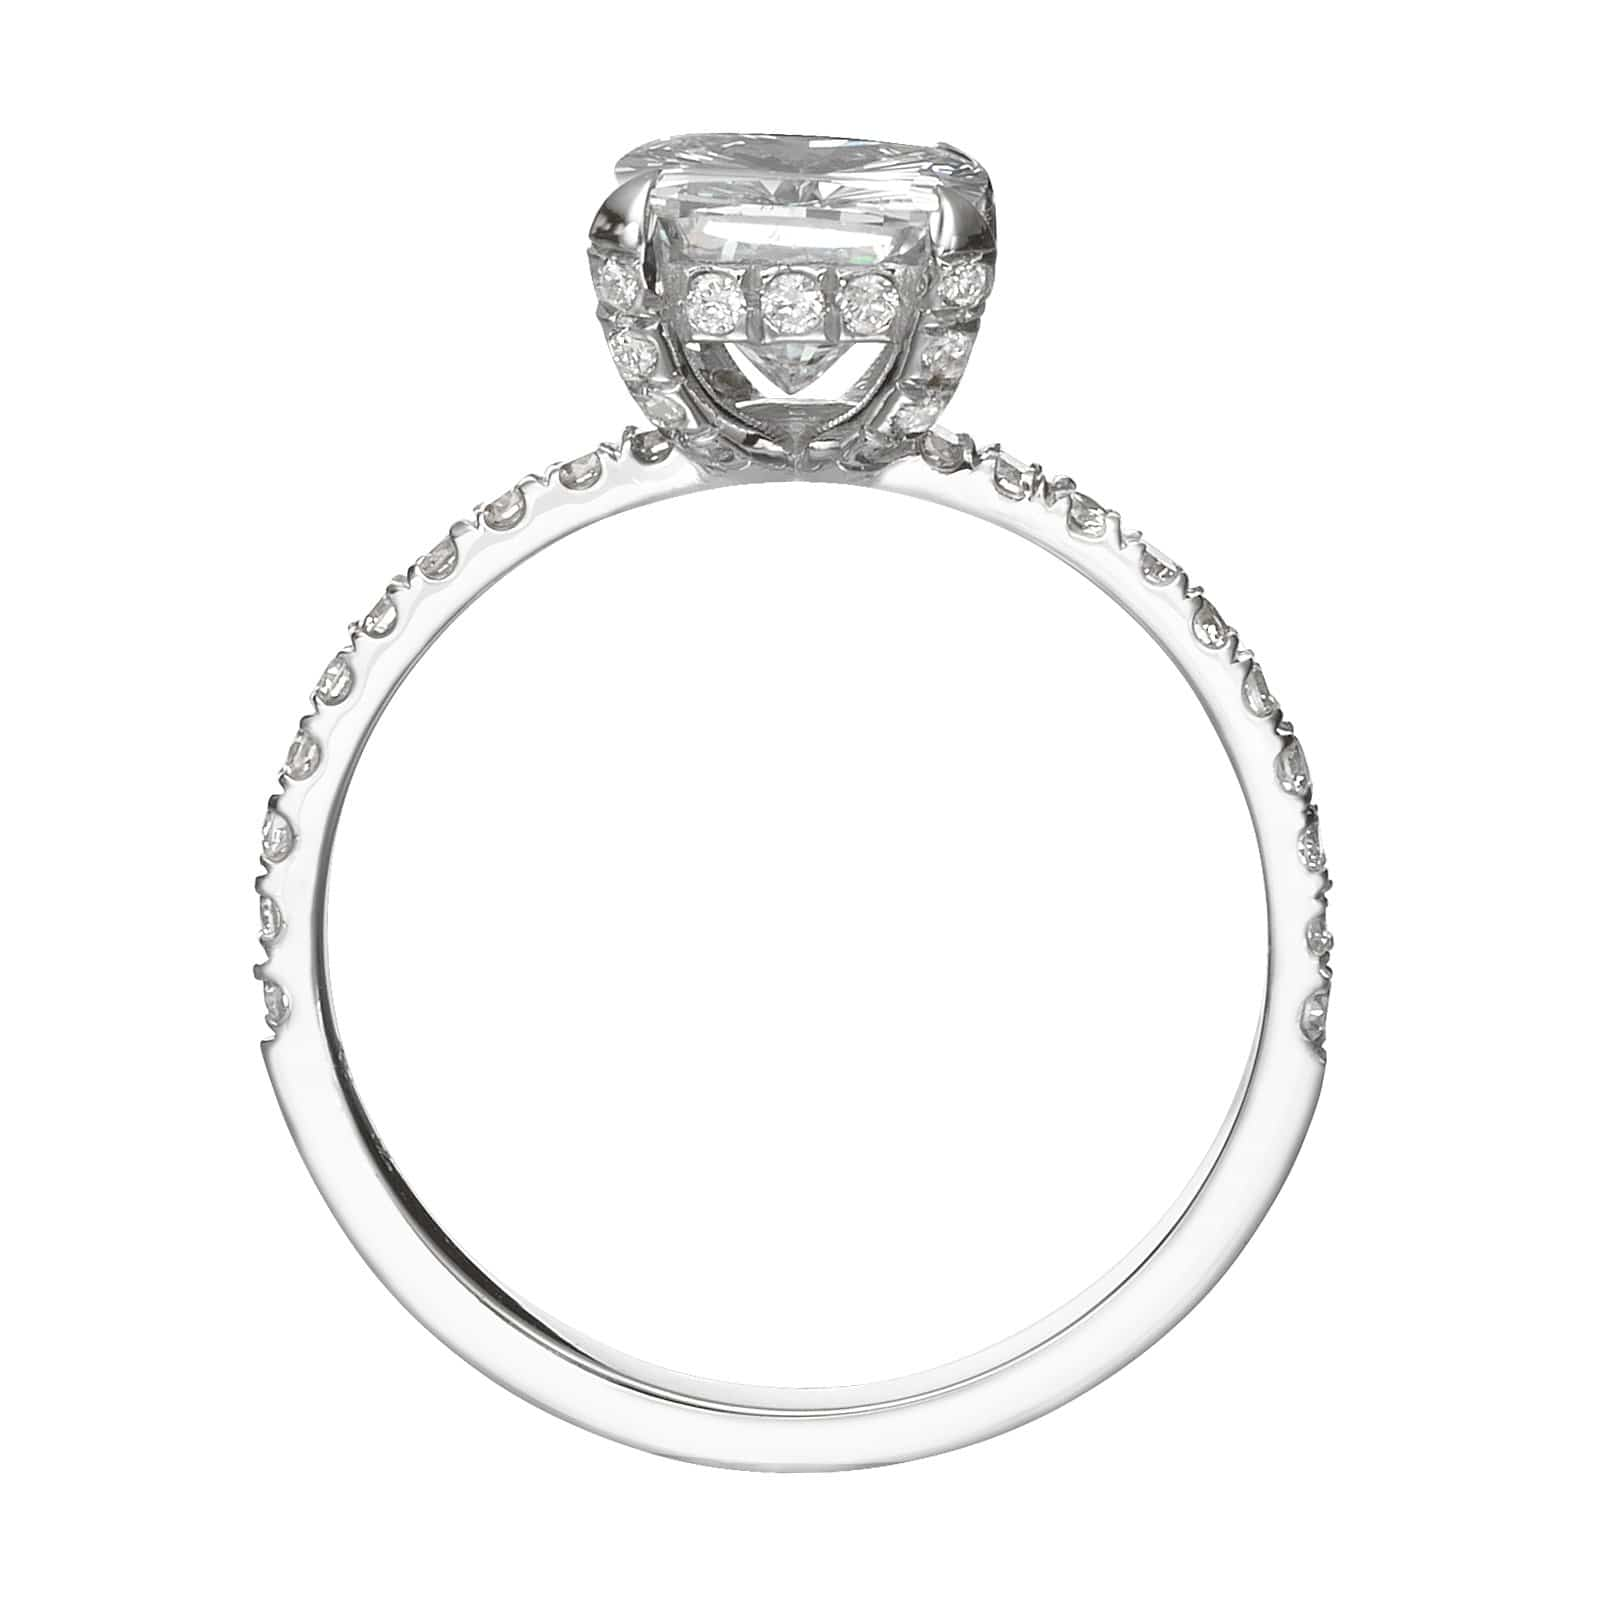 2.60 ct Cushion Cut Diamond Engagement Ring